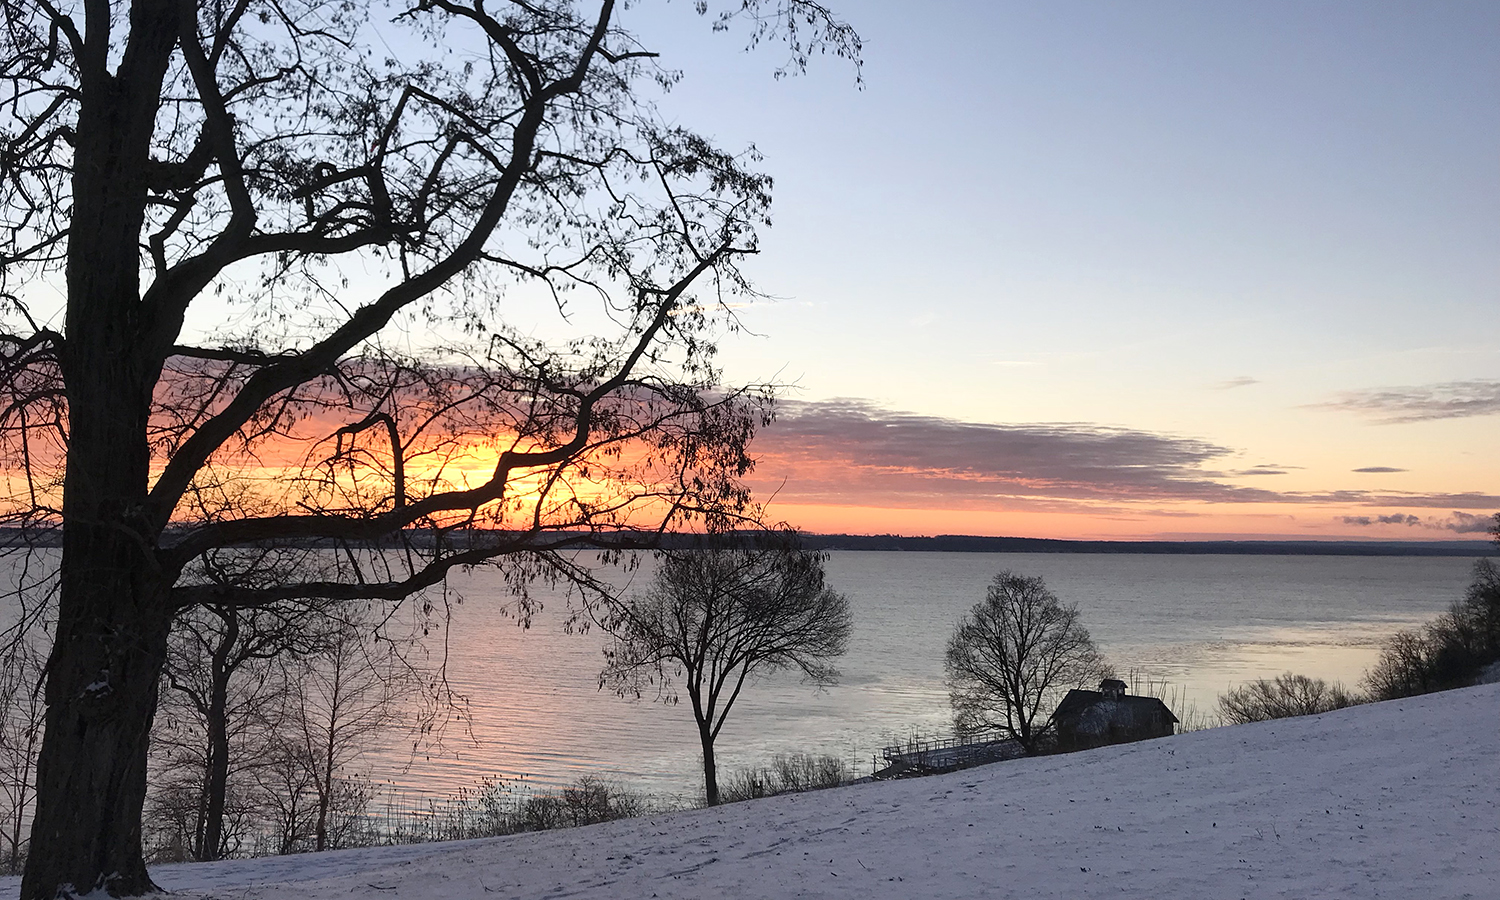 The horizon glows as the sun rises over Seneca Lake.